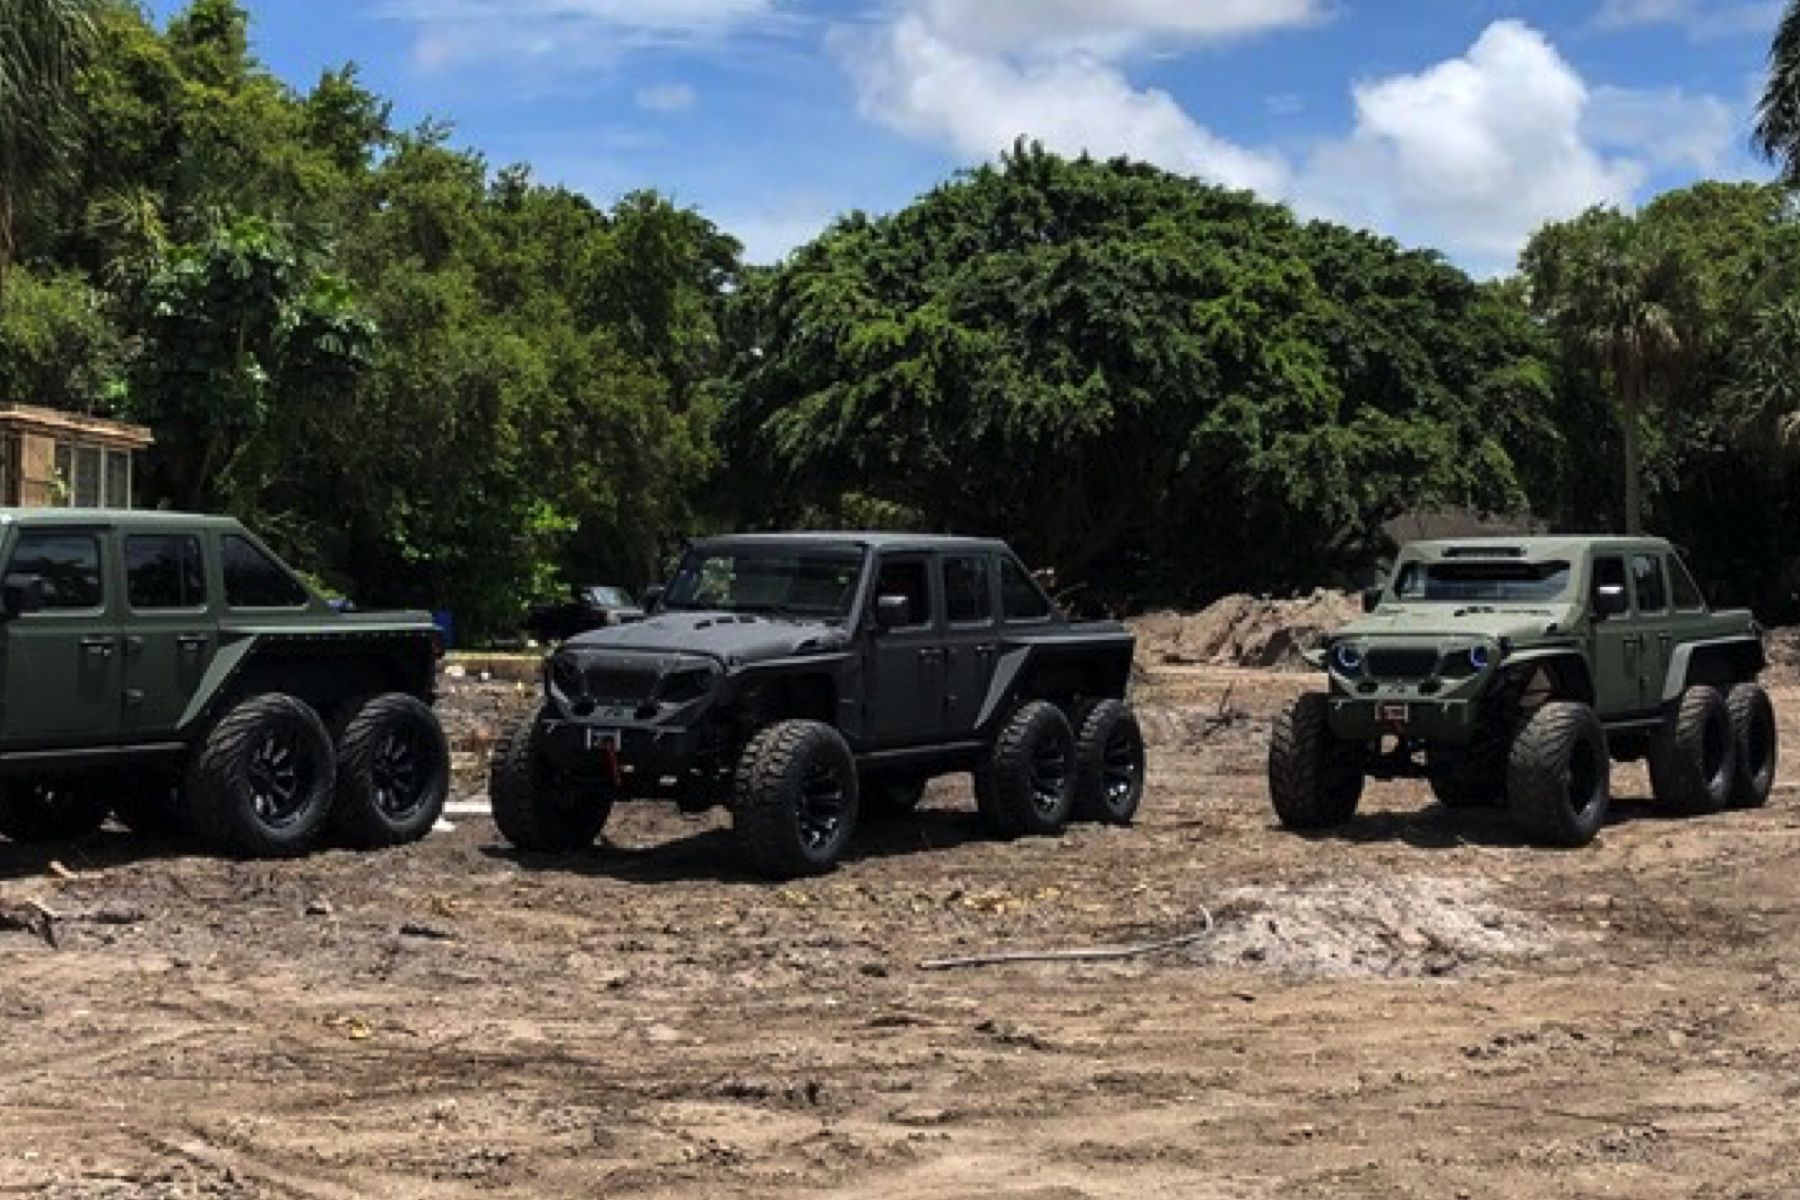 SoFlo SF 6x6G. Jeep